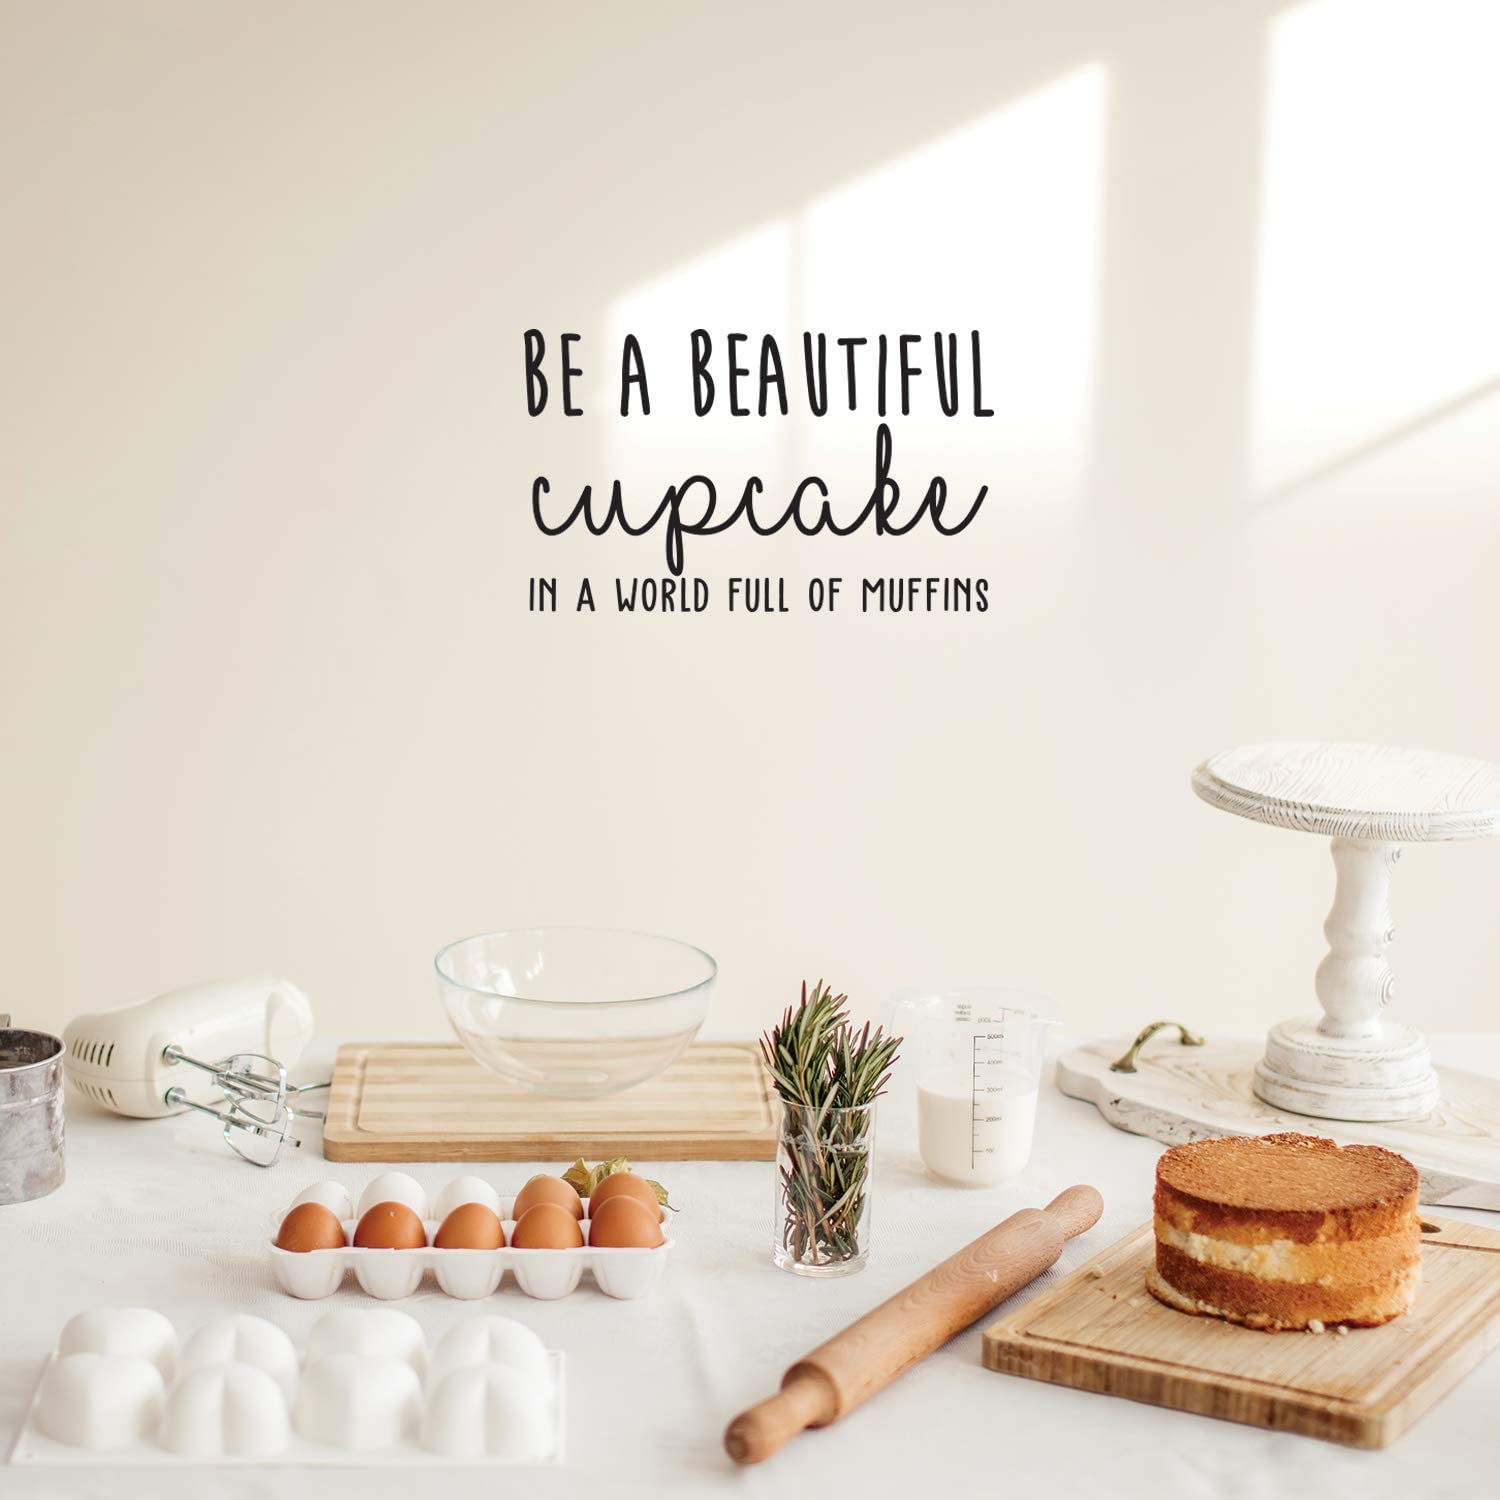 """Vinyl Wall Art Decal - Be A Beautiful Cupcake in A World Full of Muffins - 15"""" x 25"""" - Trendy Inspirational Life Quote for Home Bedroom Living Room Kitchen Playroom Decor"""